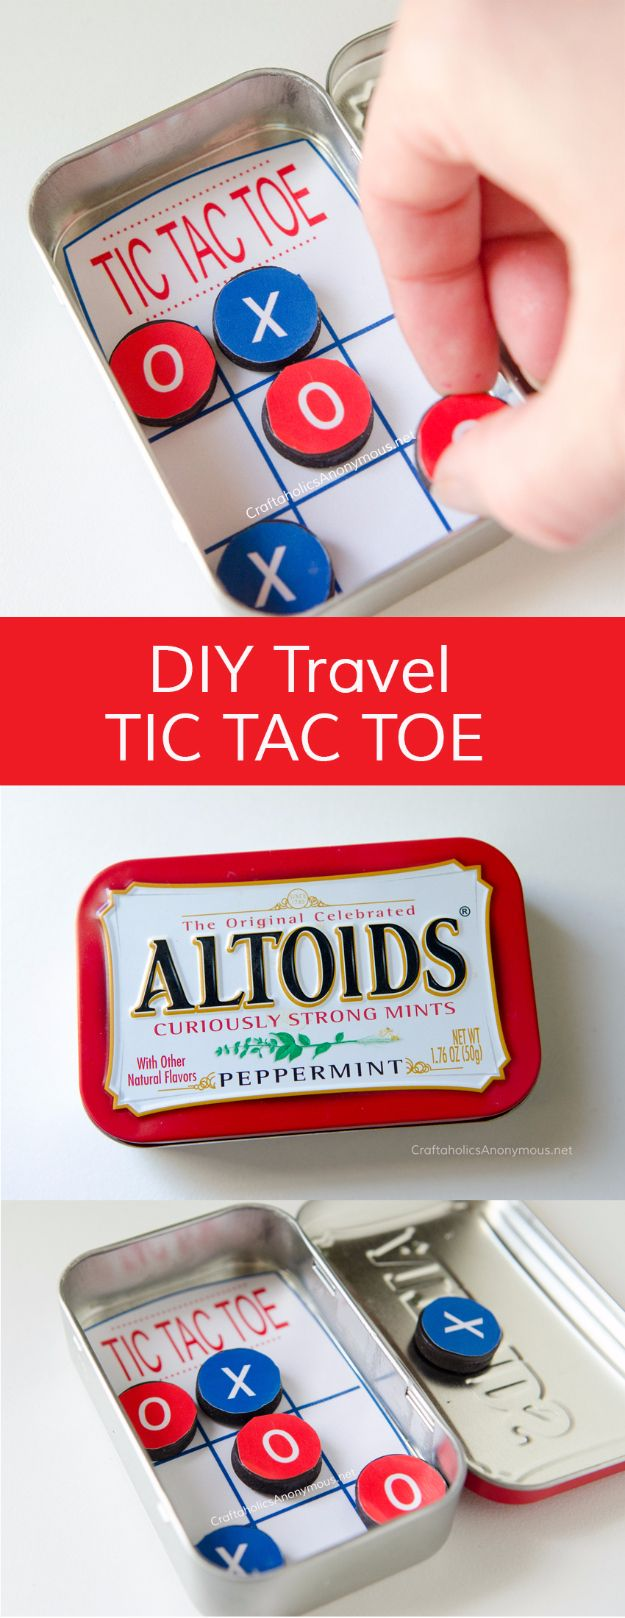 Dollar Store Crafts - DIY Pocket Tic Tac Toe - Best Cheap DIY Dollar Store Craft Ideas for Kids, Teen, Adults, Gifts and For Home - Christmas Gift Ideas, Jewelry, Easy Decorations. Crafts to Make and Sell and Organization Projects http://diyjoy.com/dollar-store-crafts